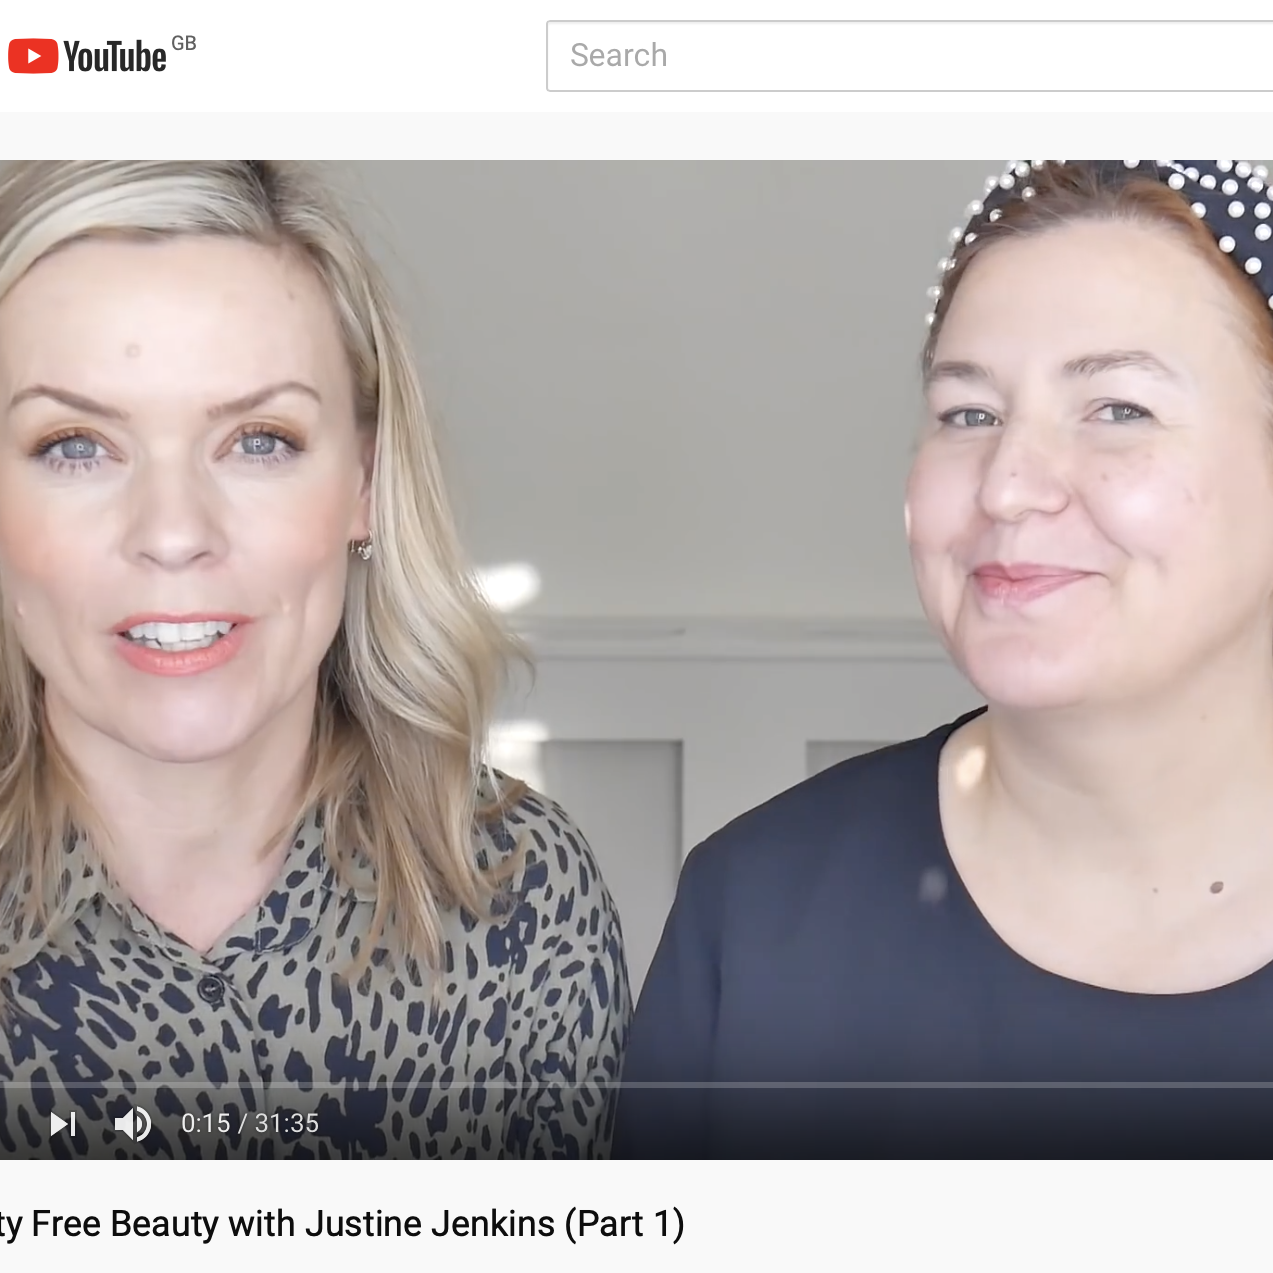 Speed Beauty & Caroline Barnes: Cruelty Free Beauty with Justine Jenkins (Part 1)